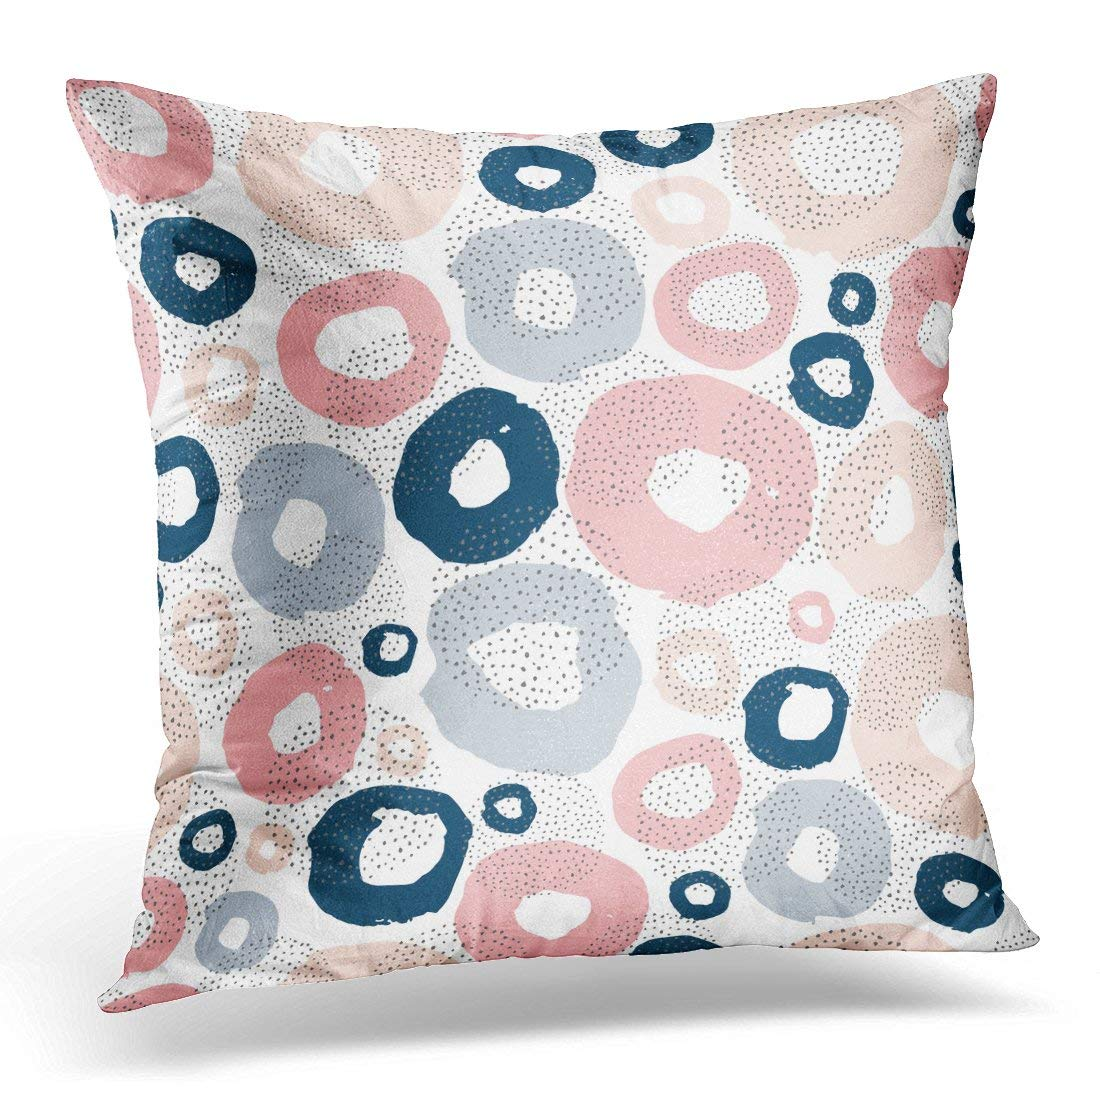 ARHOME Fun Abstract with Hand Drawn Teens Pillow Case Pillow Cover 20x20 inch